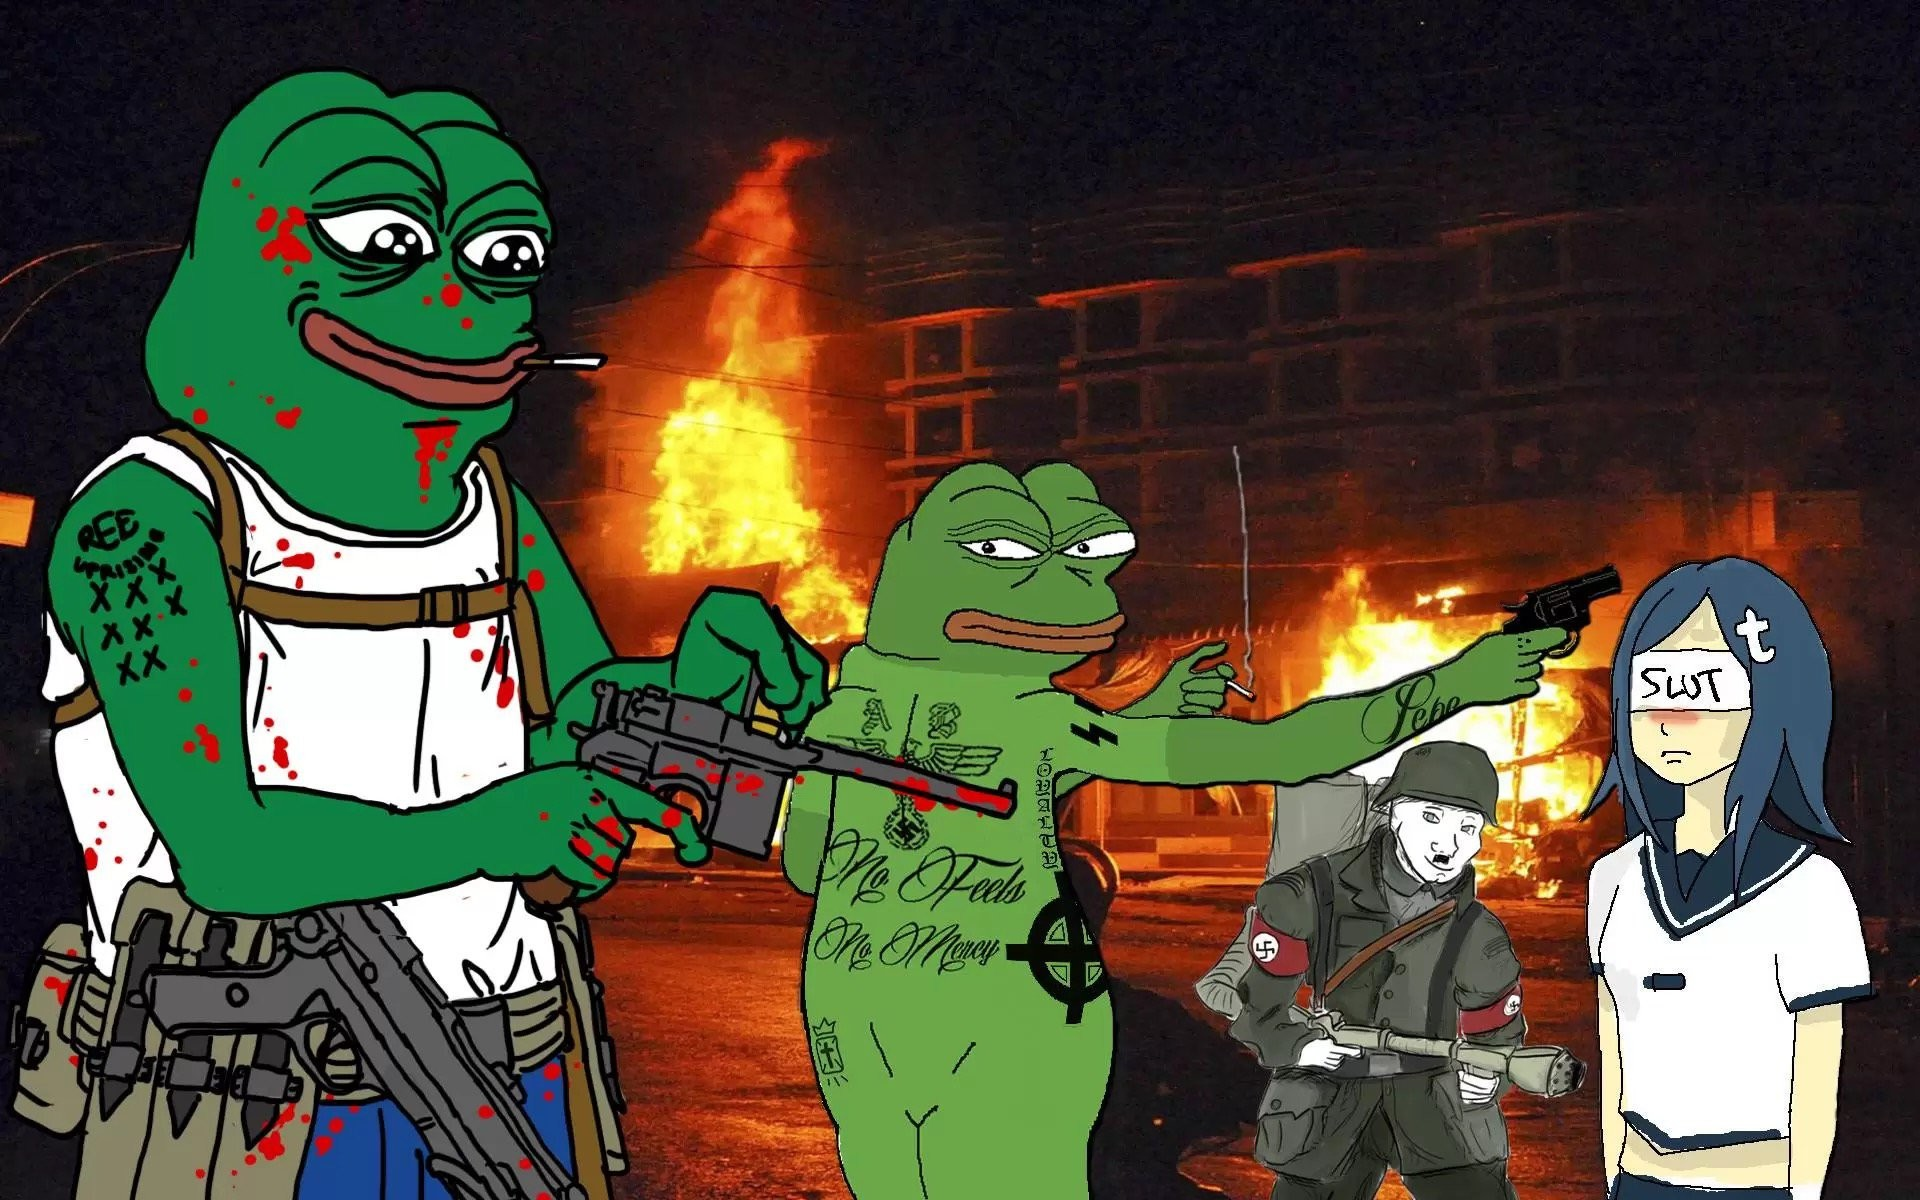 """Cooper Fleishman on Twitter: """"…as illustrated by this Pepe the Frog meme,  featuring Nazi Pepe killing a social justice warrior.  https://t.co/BLlaIQQ24P"""""""